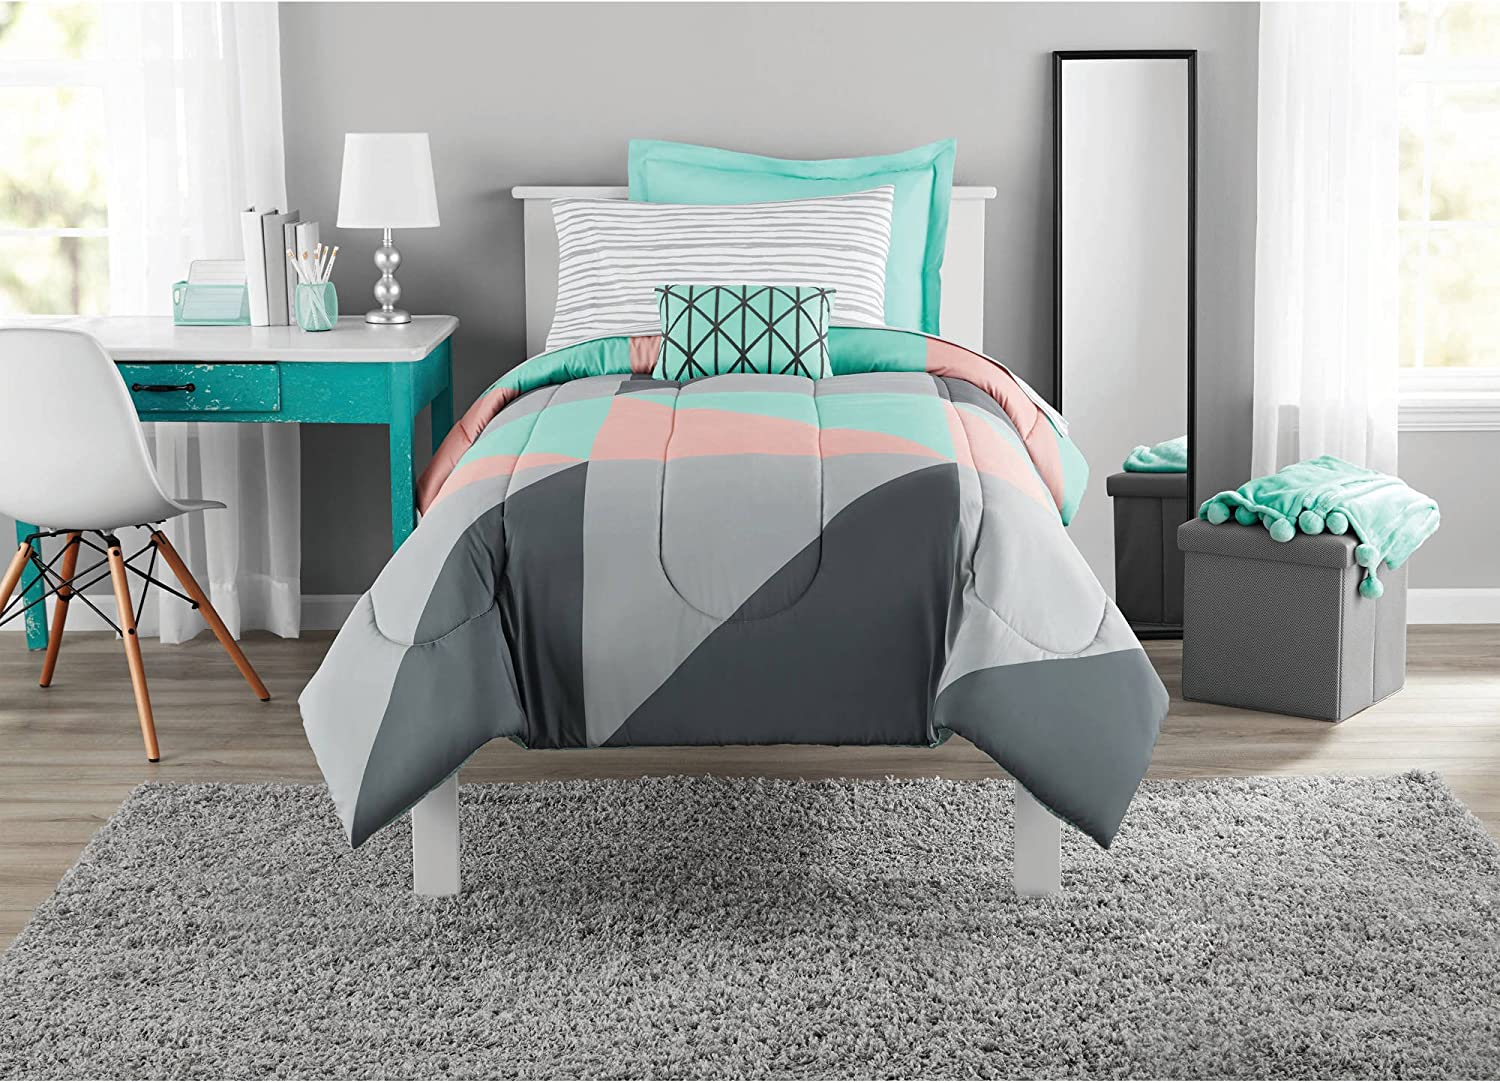 Fun and Bold Mainstays Gray and Teal Bed in a Bag Modern Comforter Set.